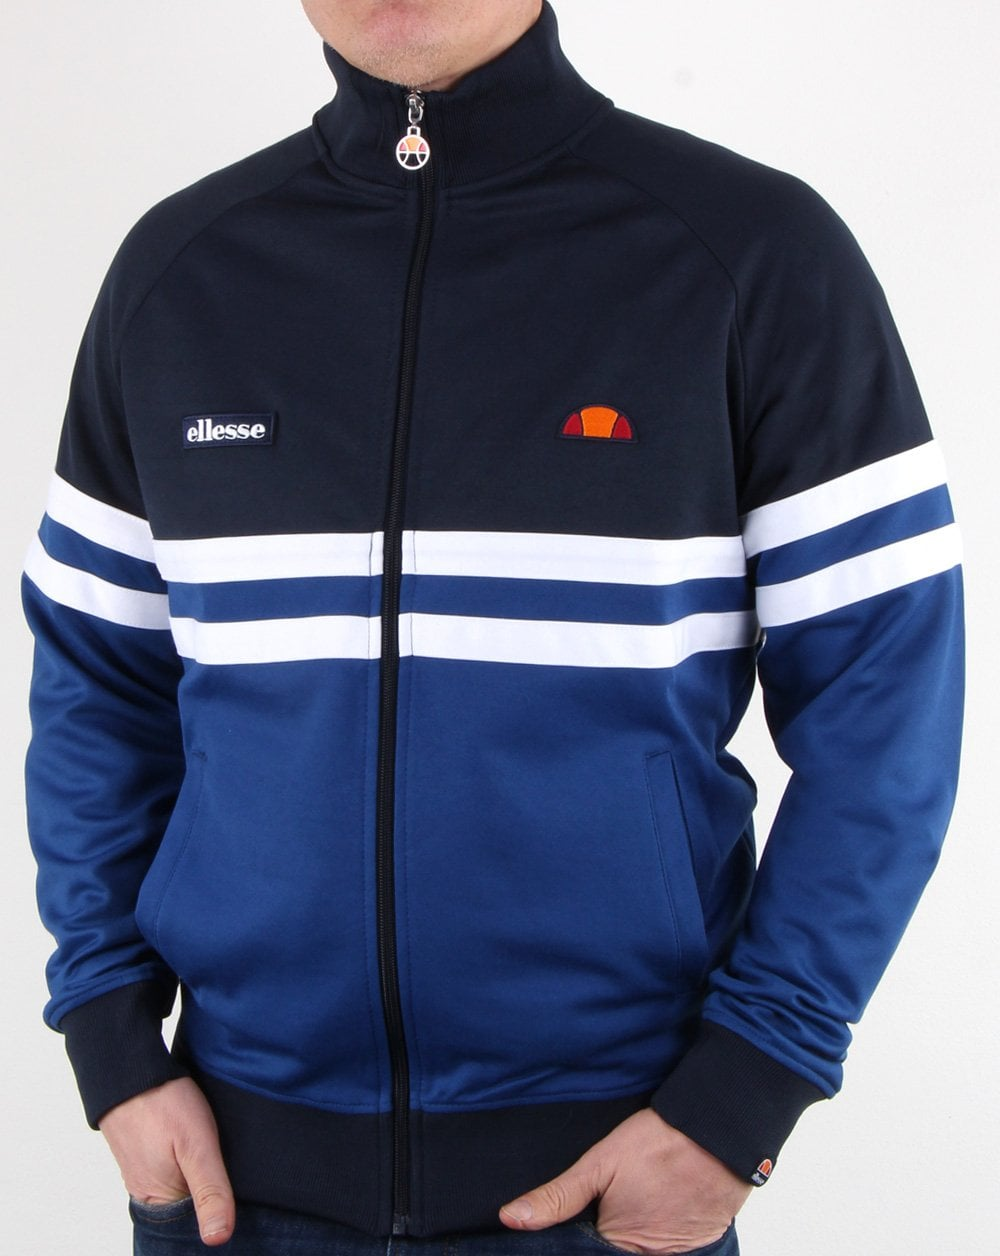 ellesse rimini bex the firm